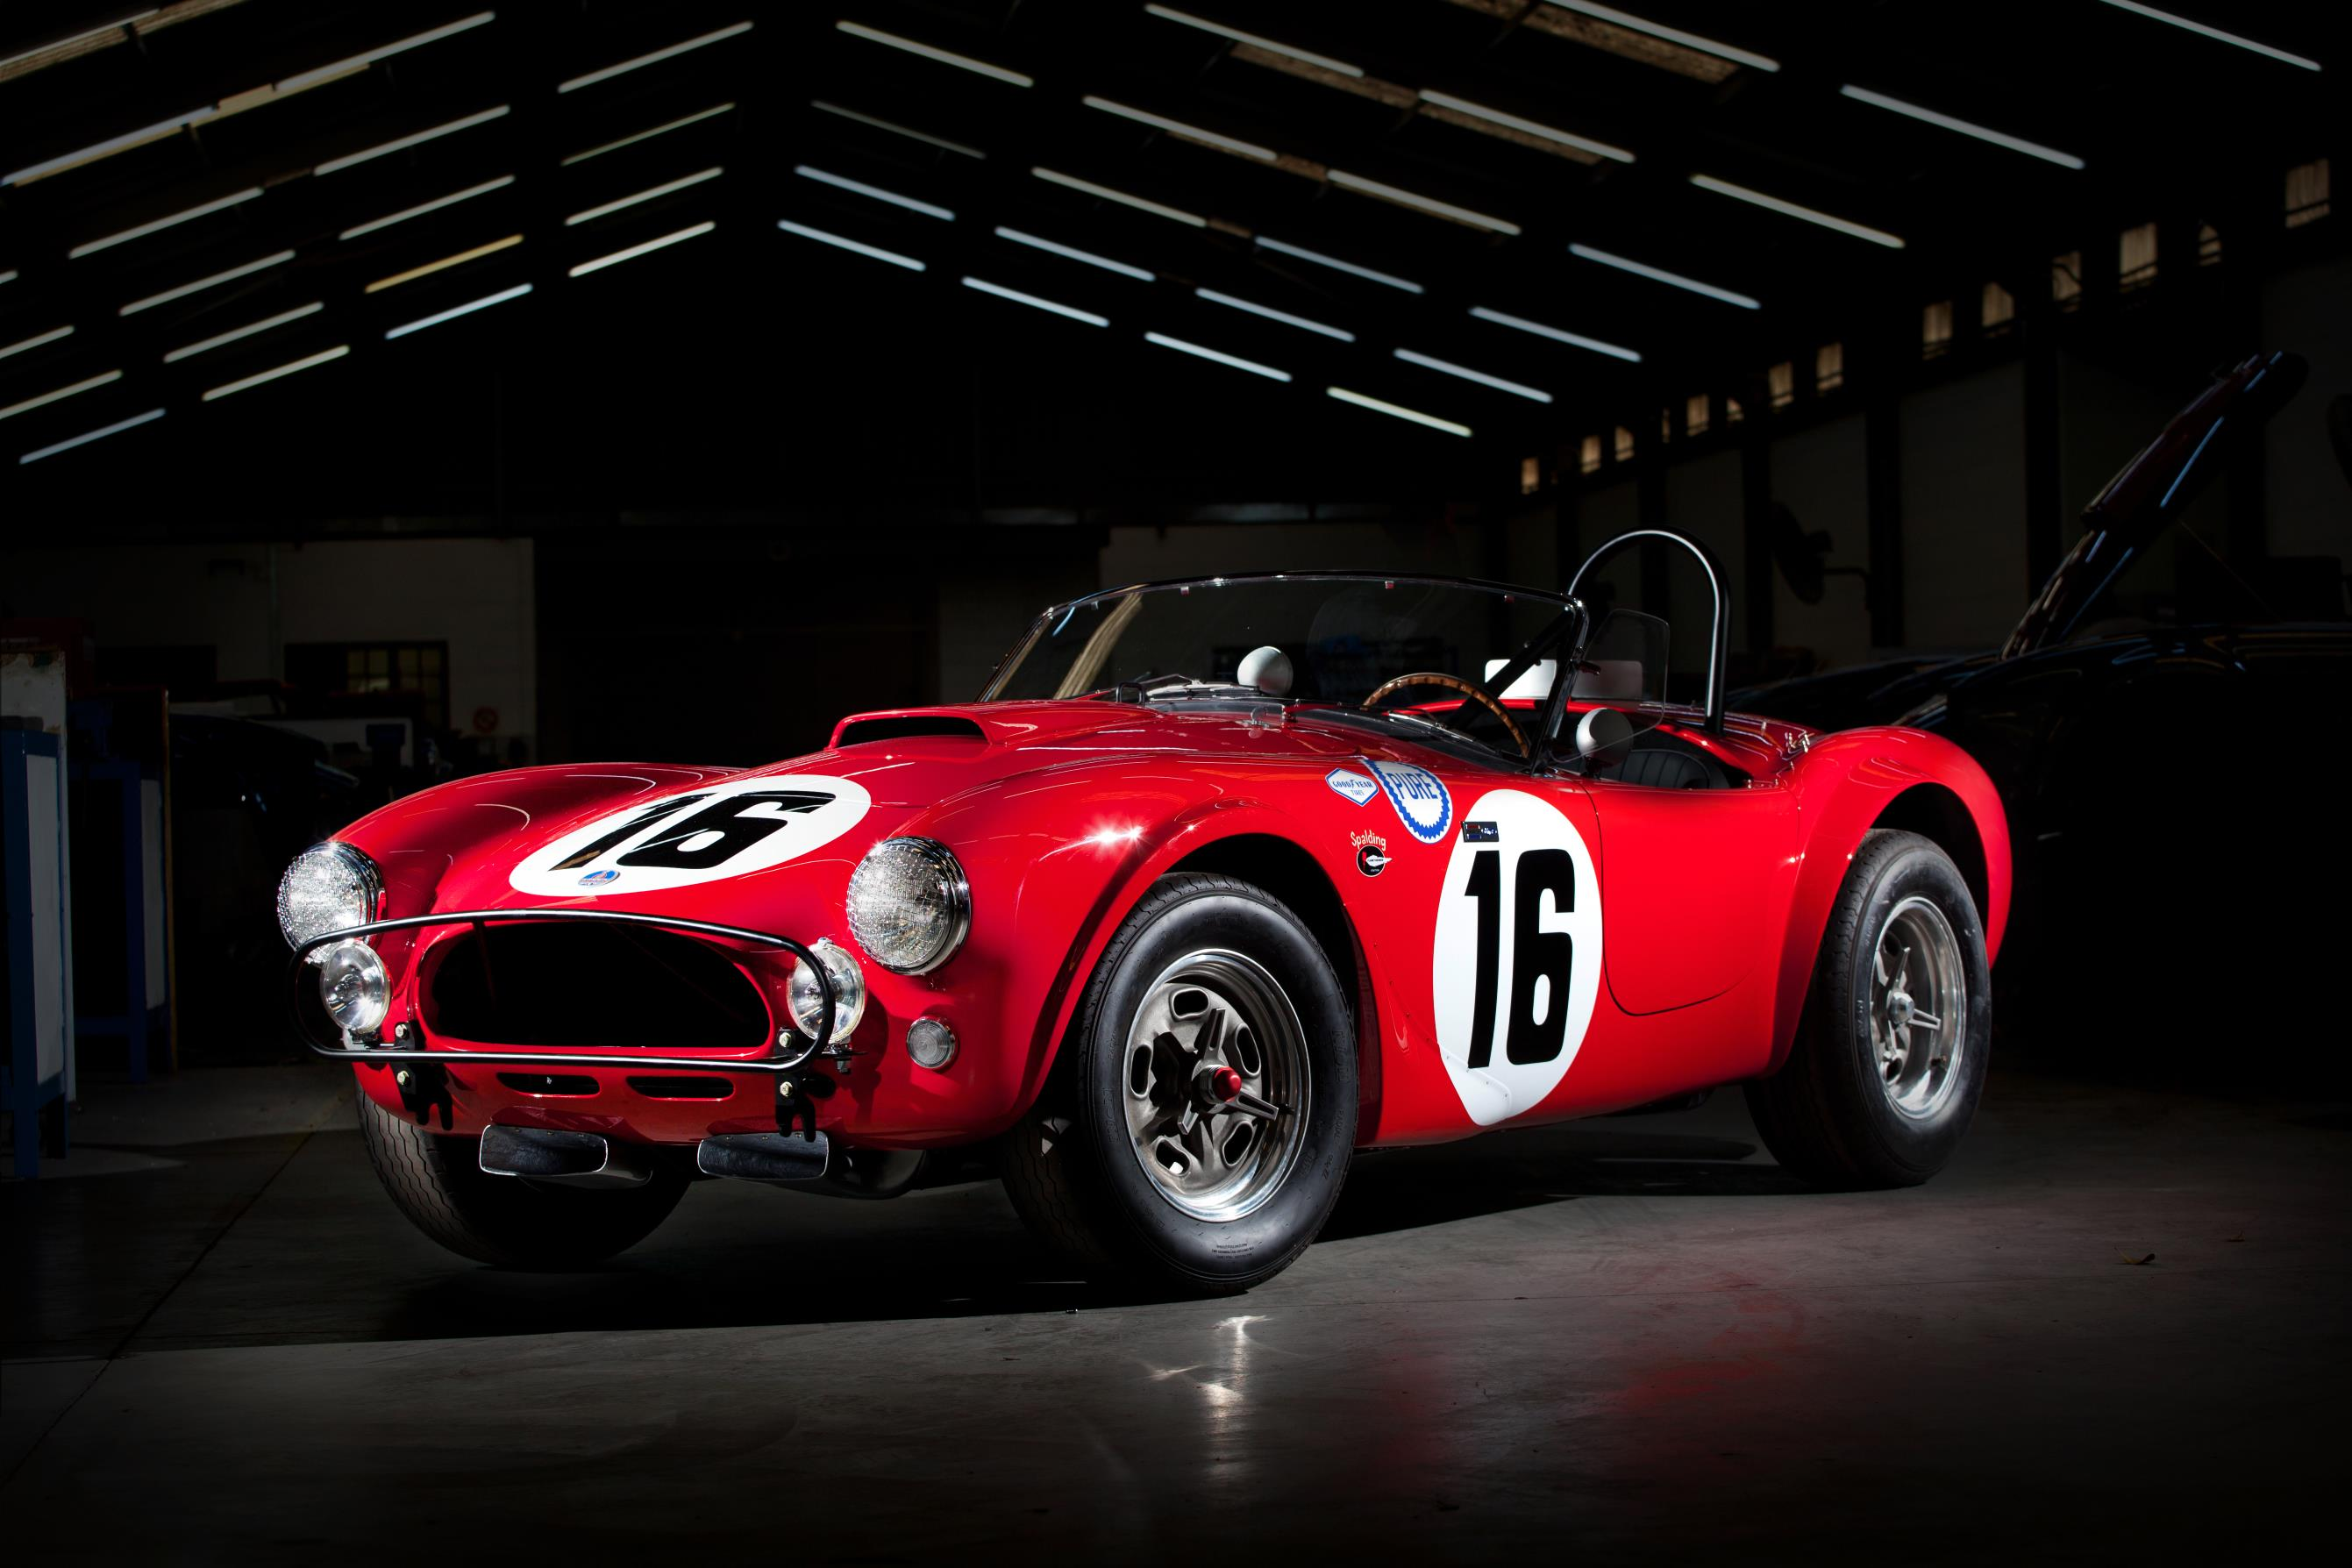 le mans coupes  offers iconic  sports  race car evocations myautoworldcom